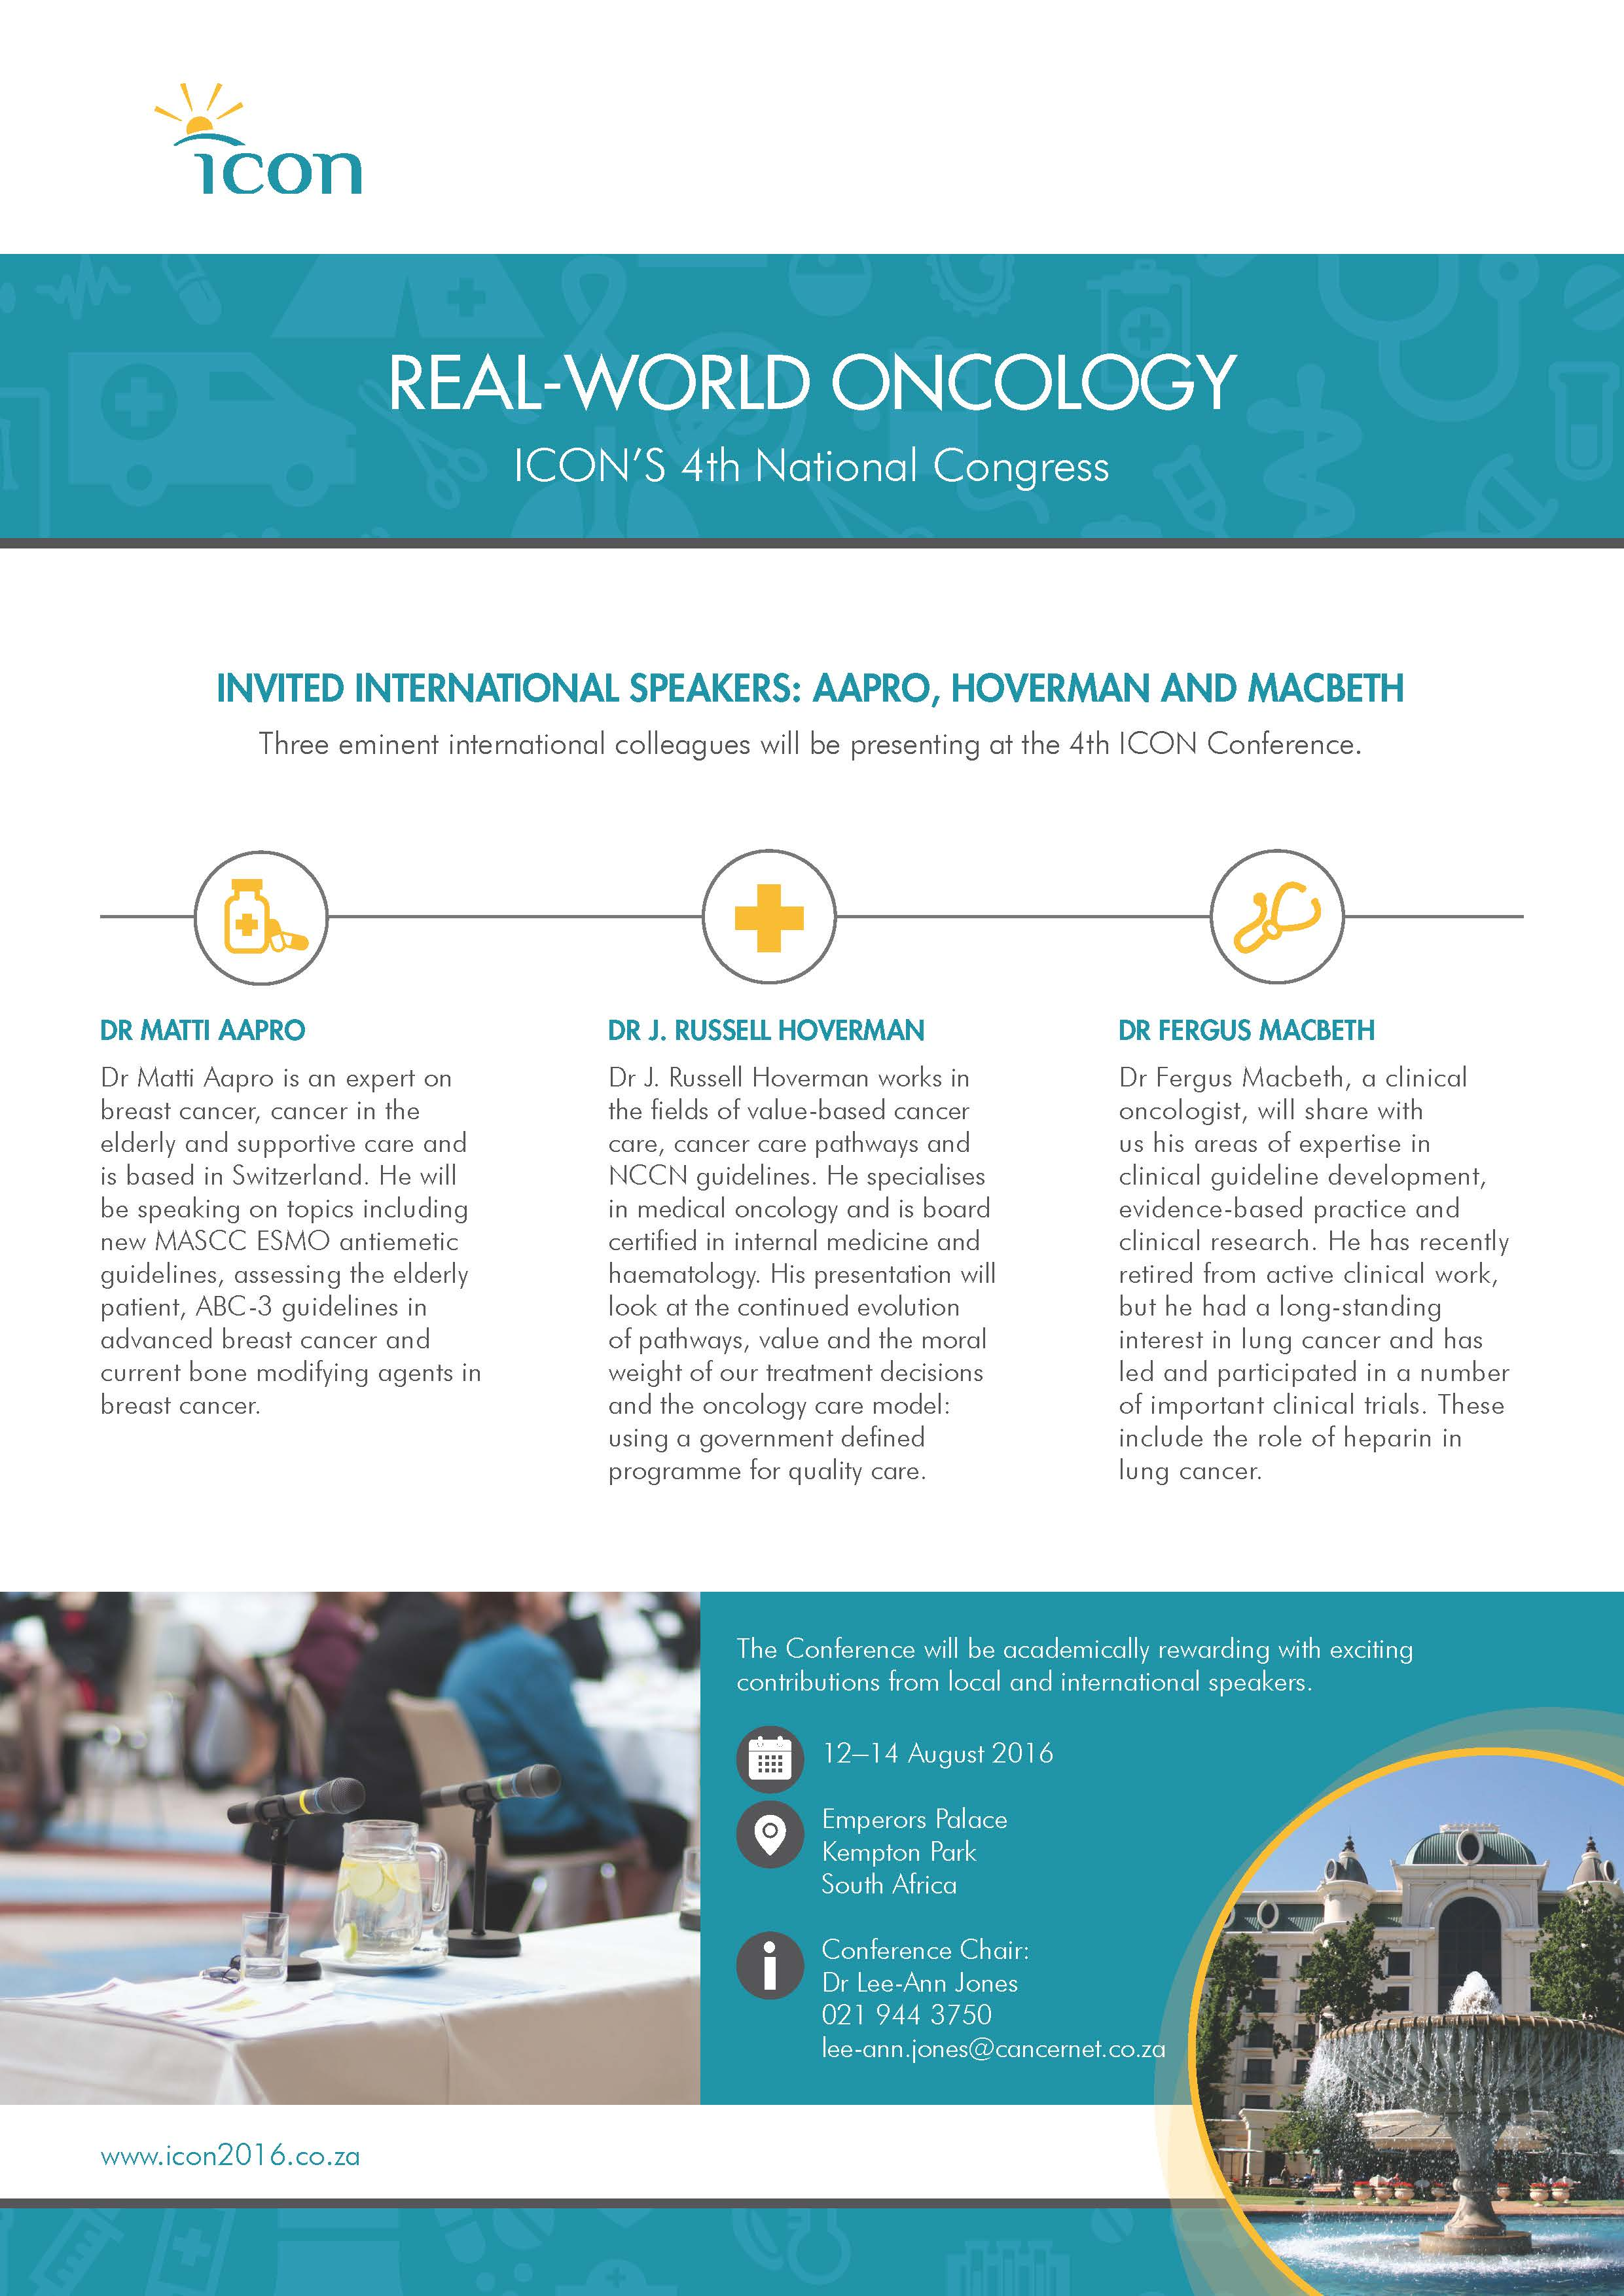 ICOND099 Medsuite conference advert A4_NO CROP.jpg